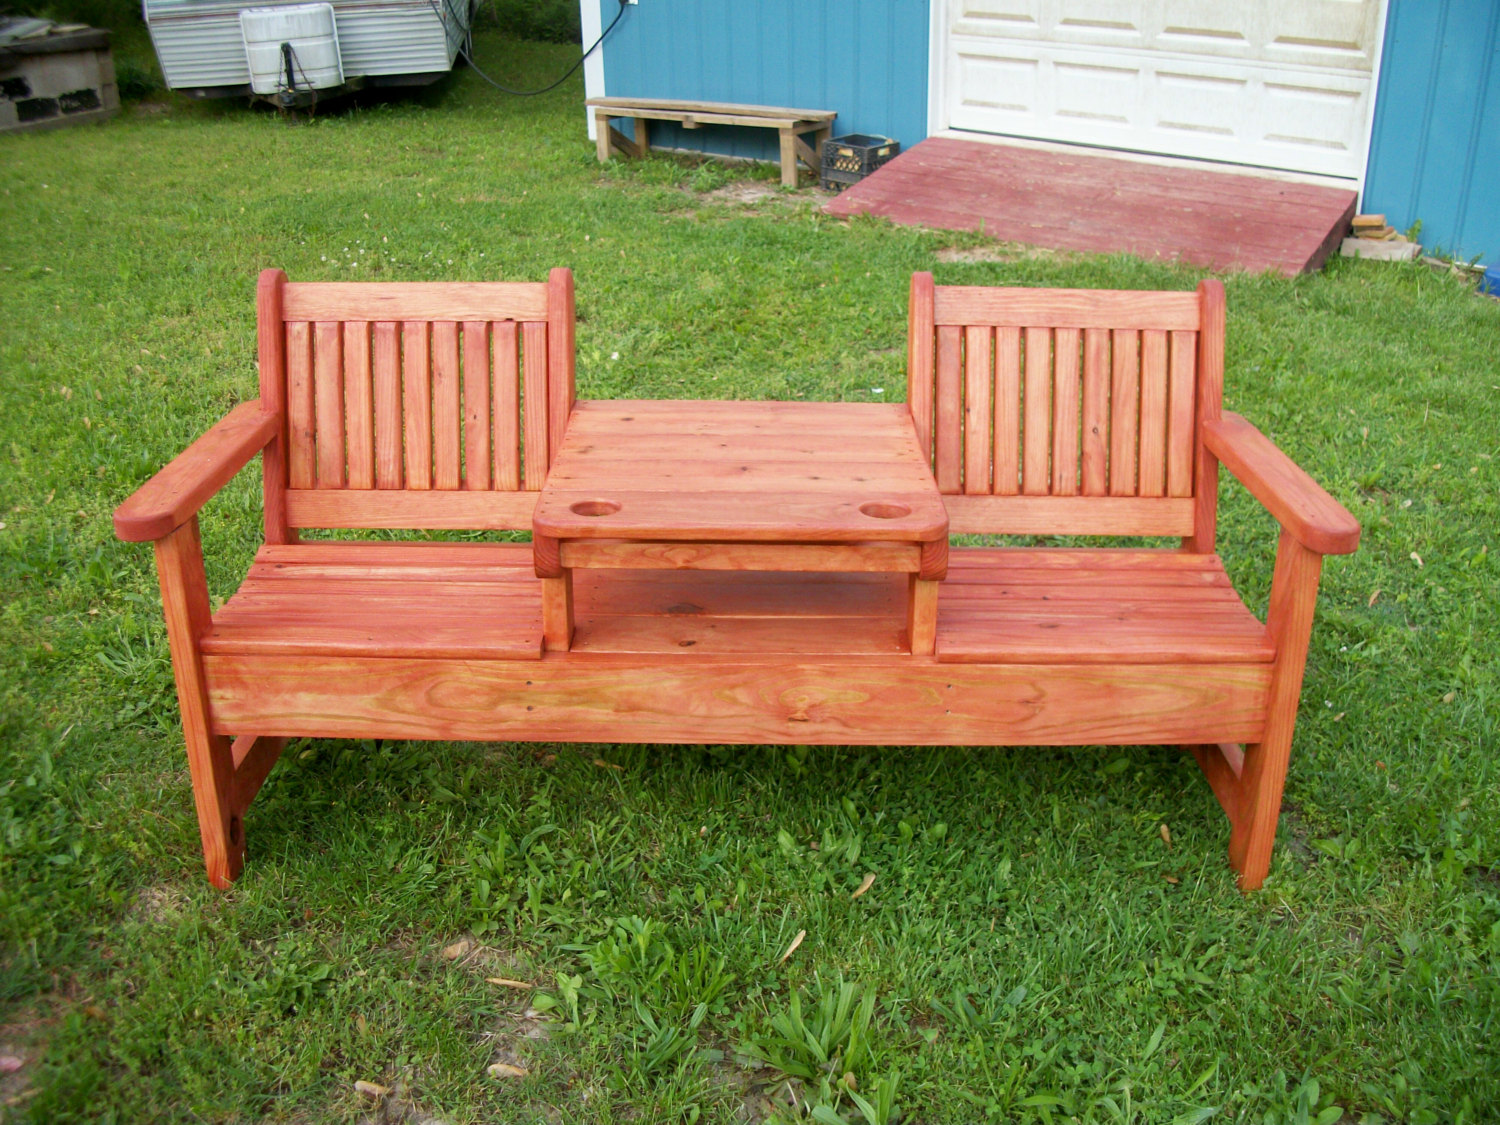 amazing outdoor bench ideas  style motivation -  amazing outdoor bench ideas